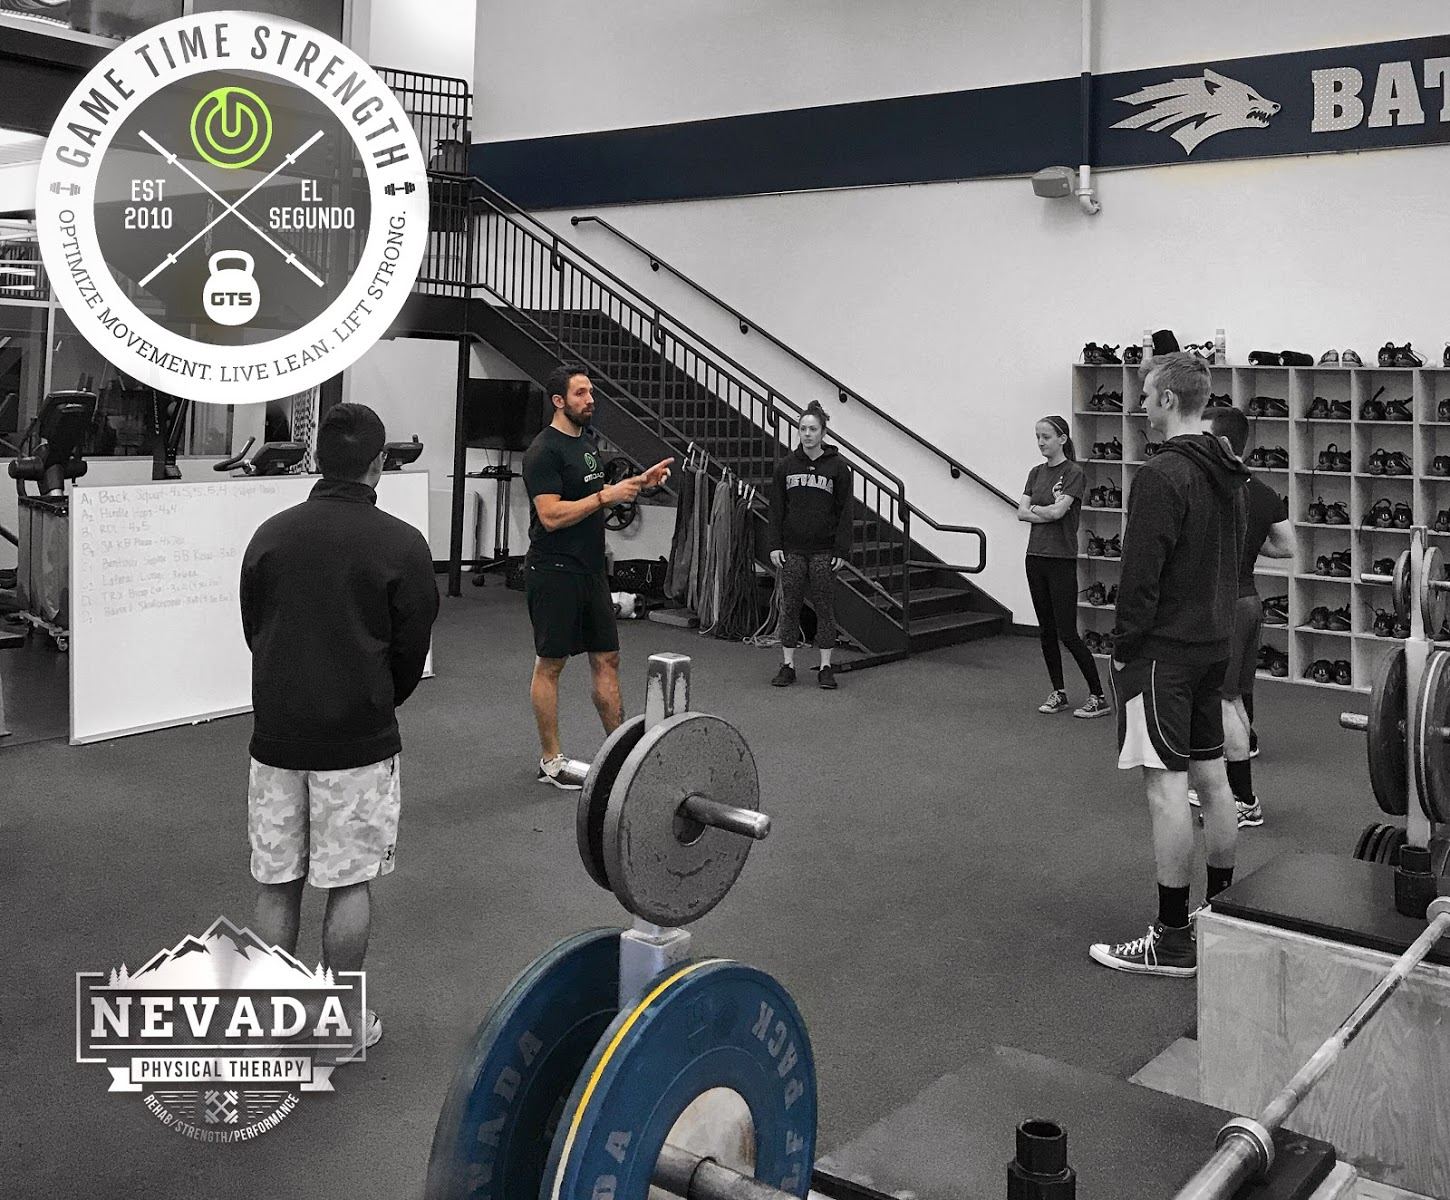 Group - GTS Game Time Strength - Barbell Strength Workshop - Physical Therapy - Reno Nevada - Rehab Strength Performance Los Angeles Coach.JPG